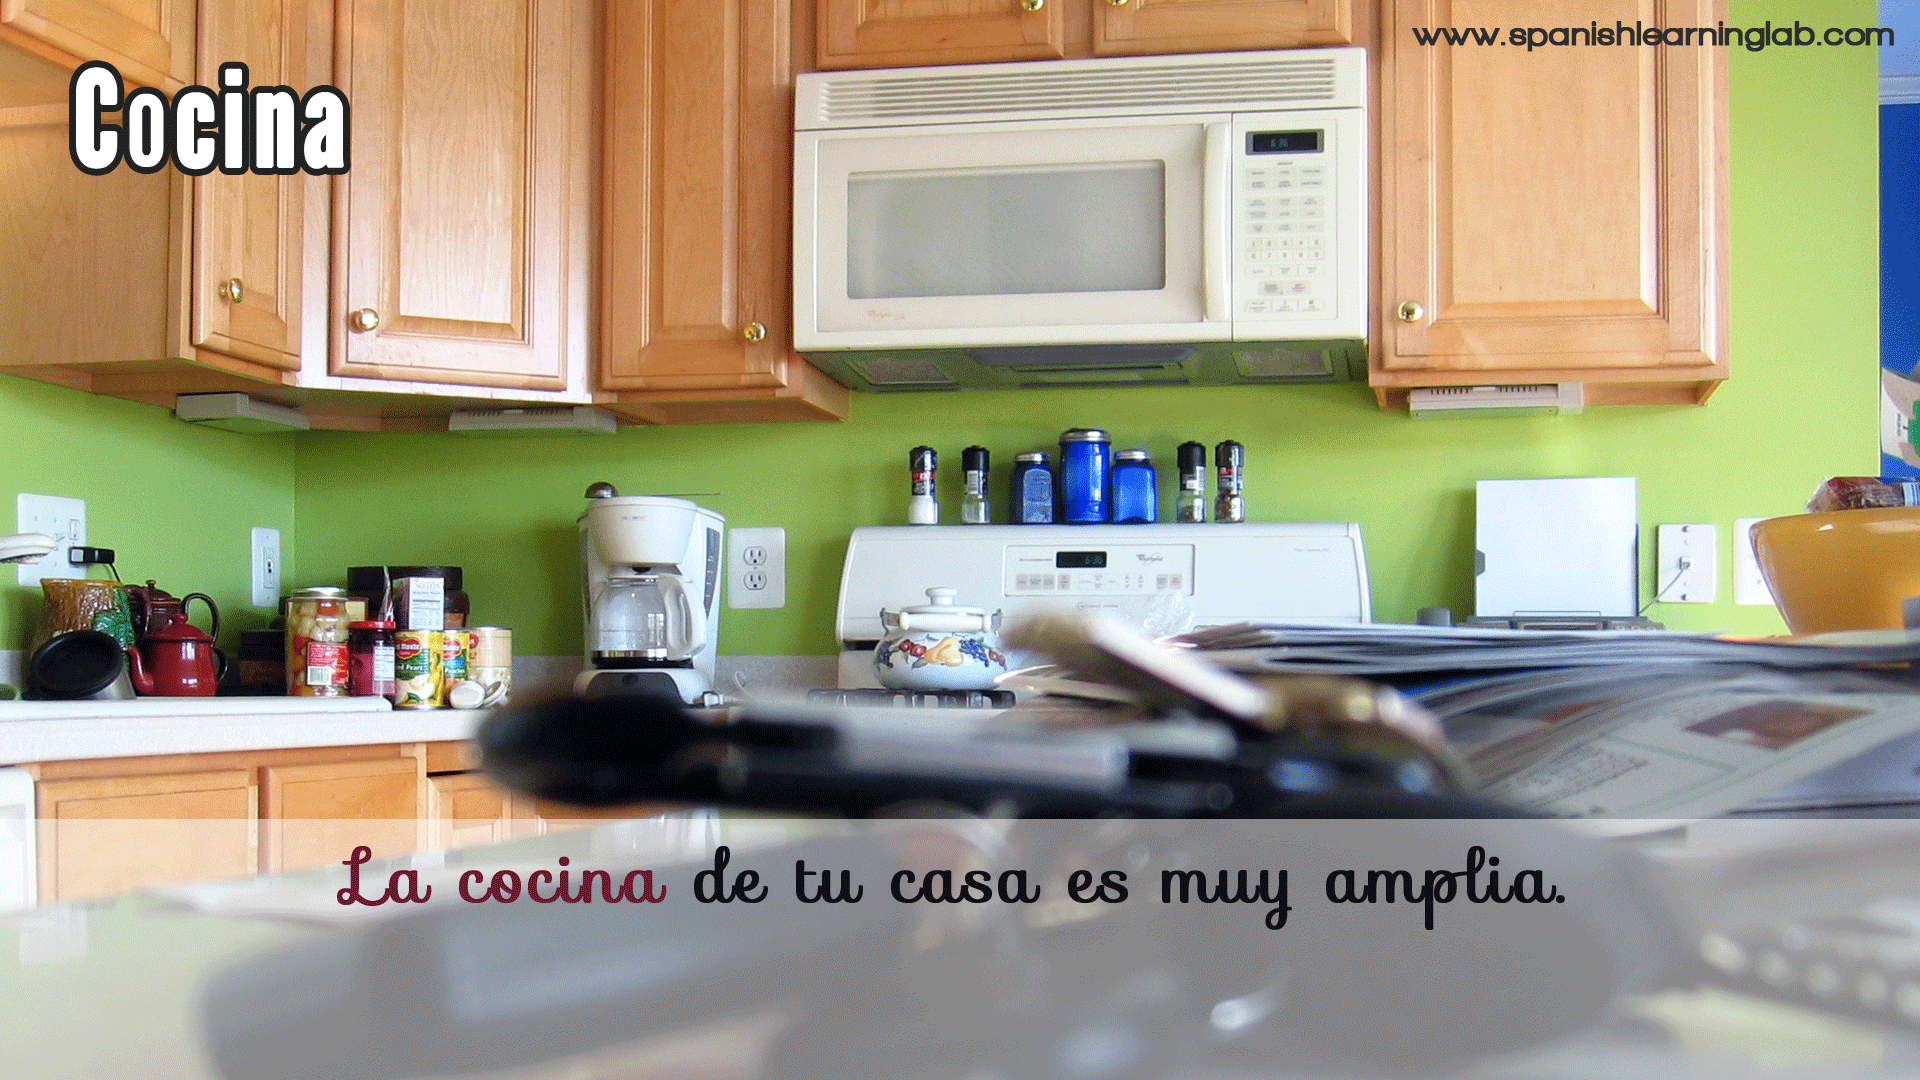 Cocina Is The Way We Say Kitchen In Spanish As You Can See